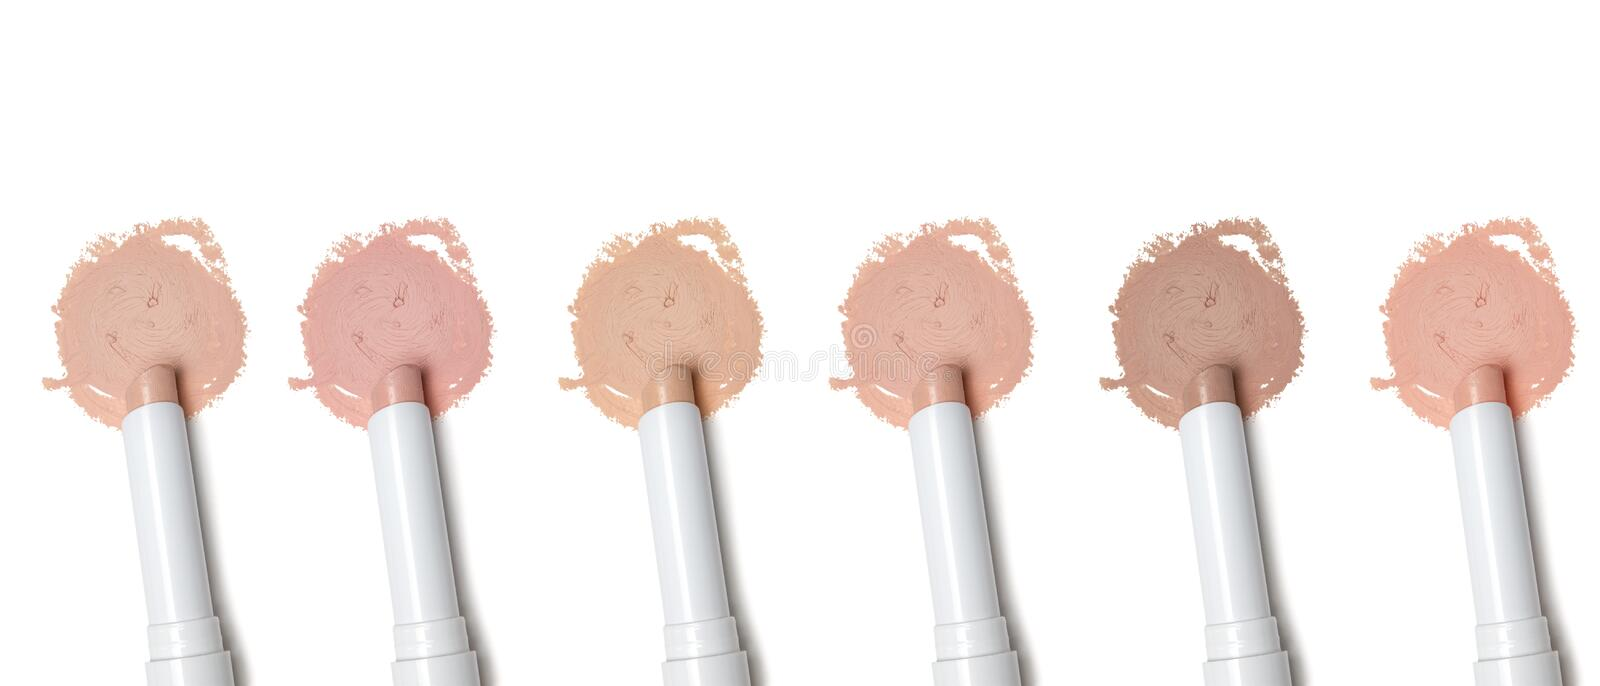 Different tones of concealer. Different tones of makeup concealer pencil on white background royalty free stock images